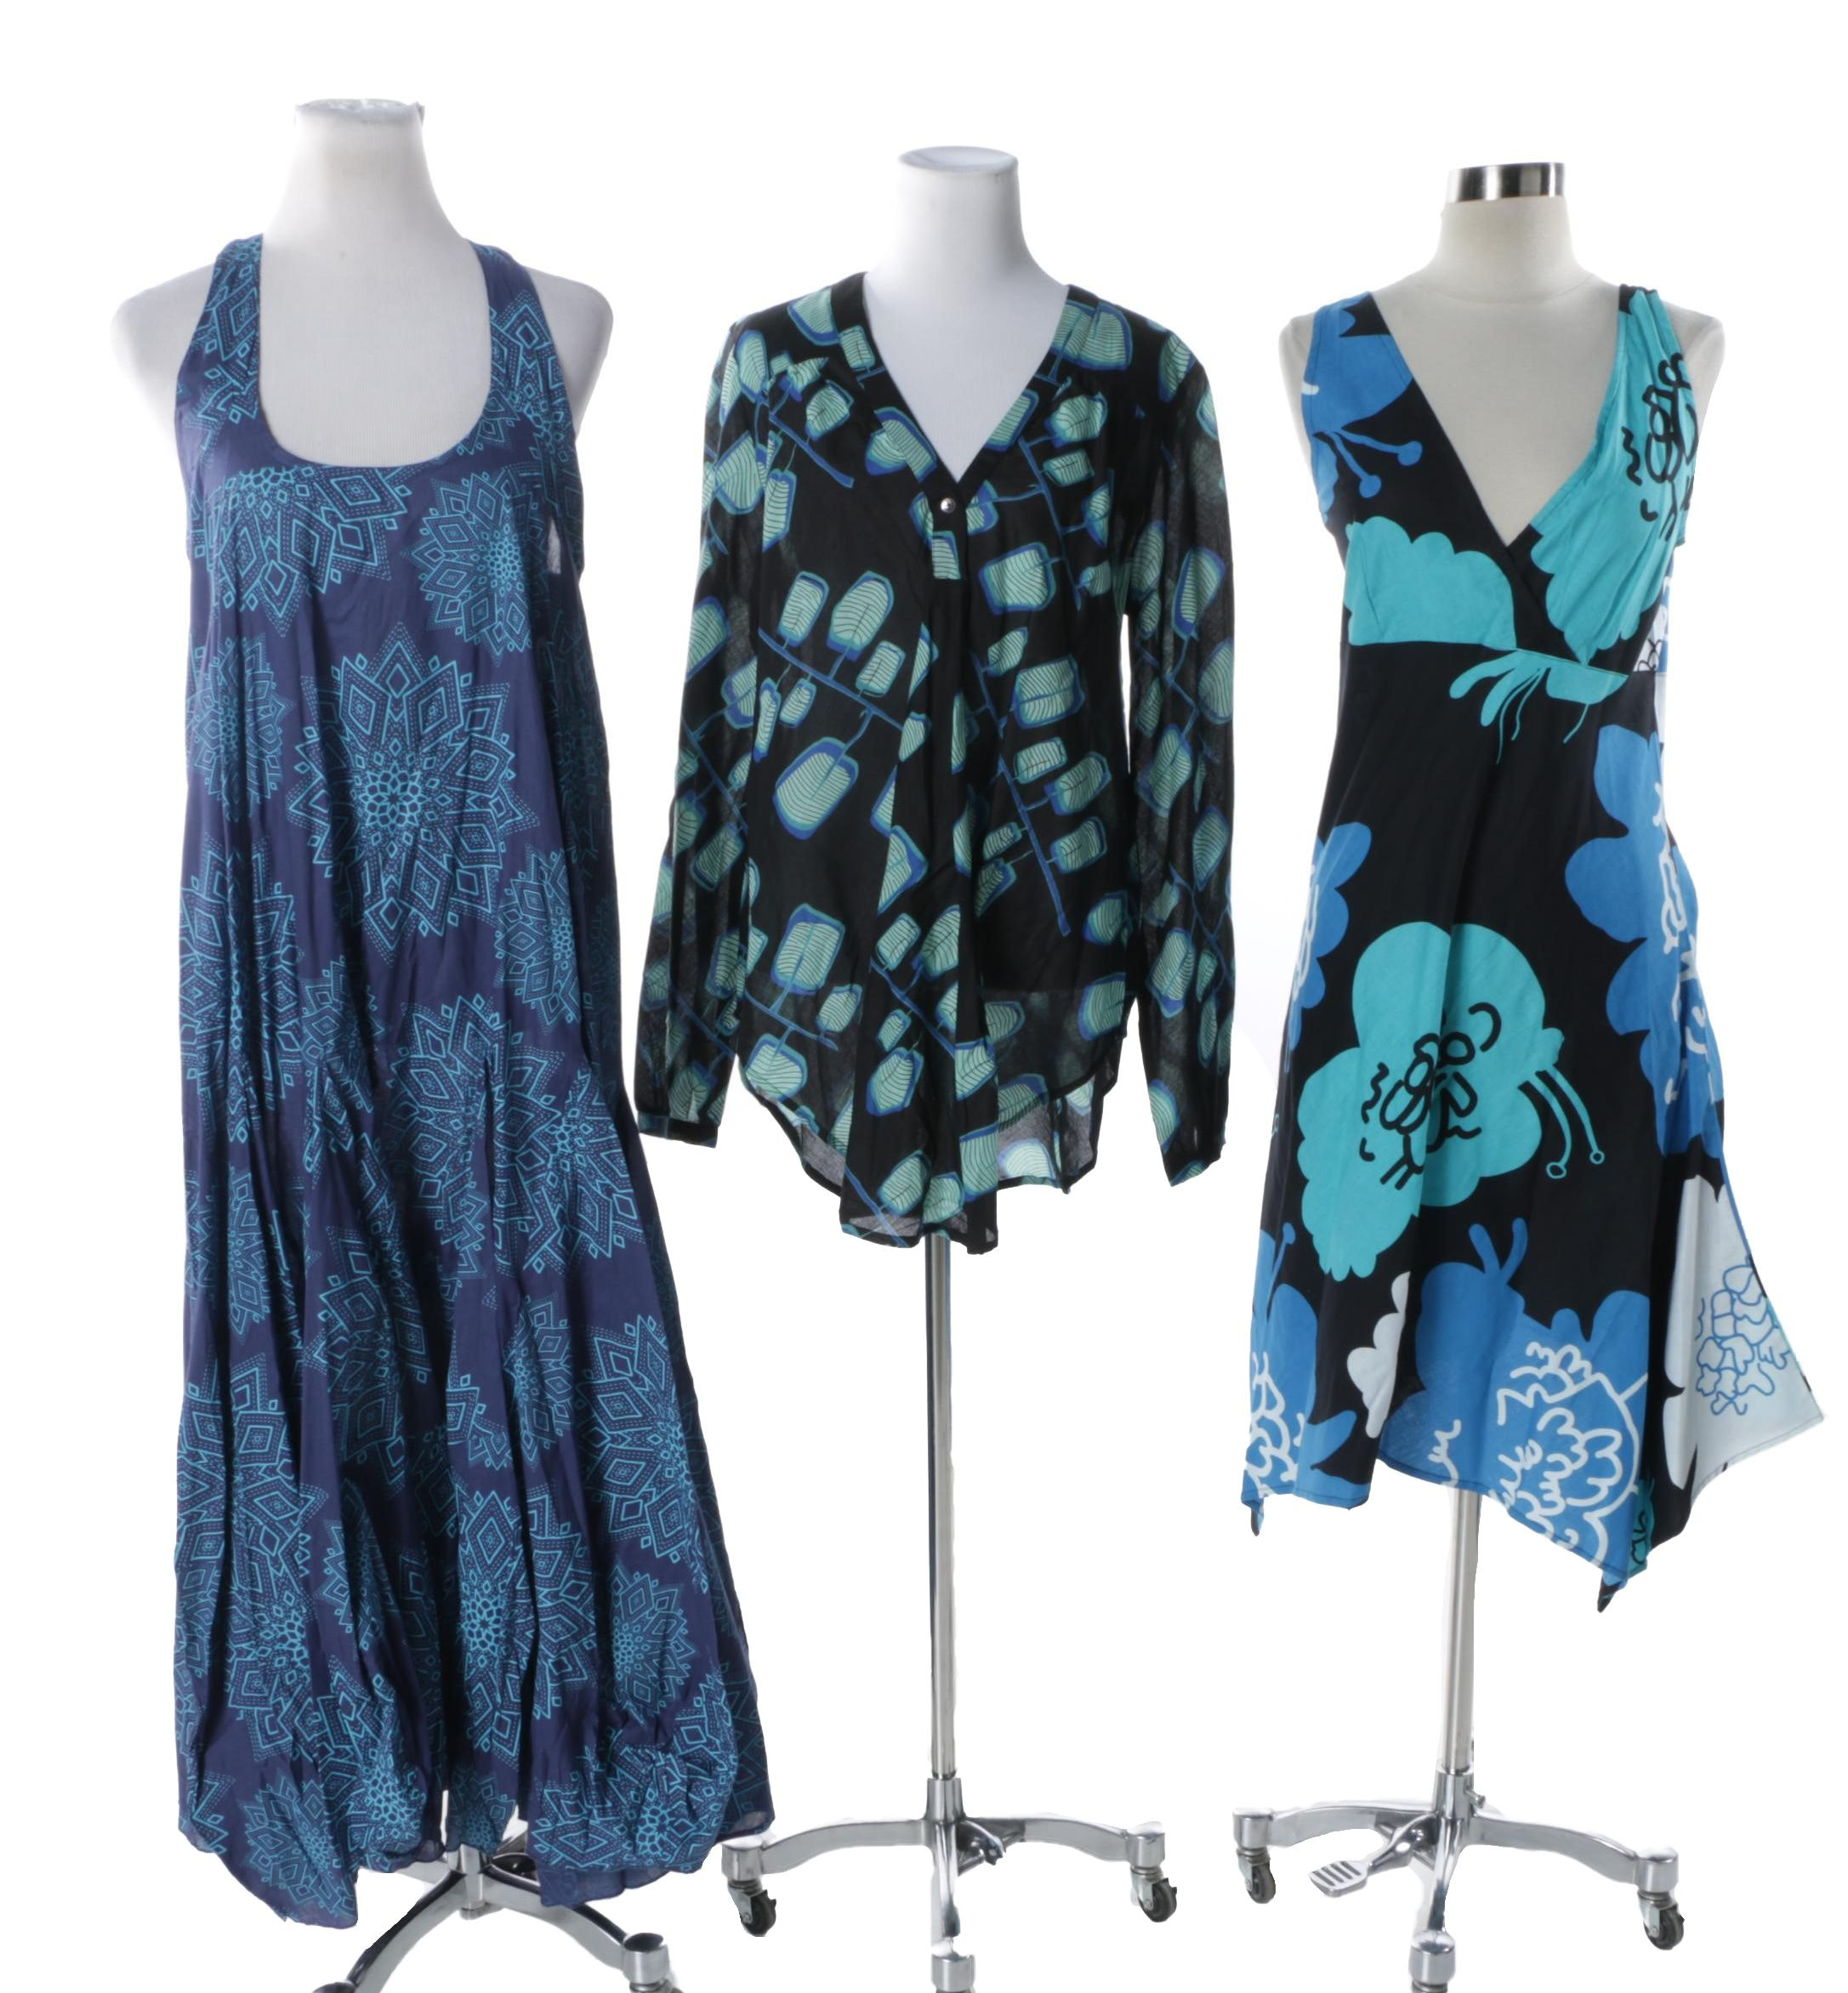 Women's Aller Simplement Size Medium Blue Print Dresses and Top